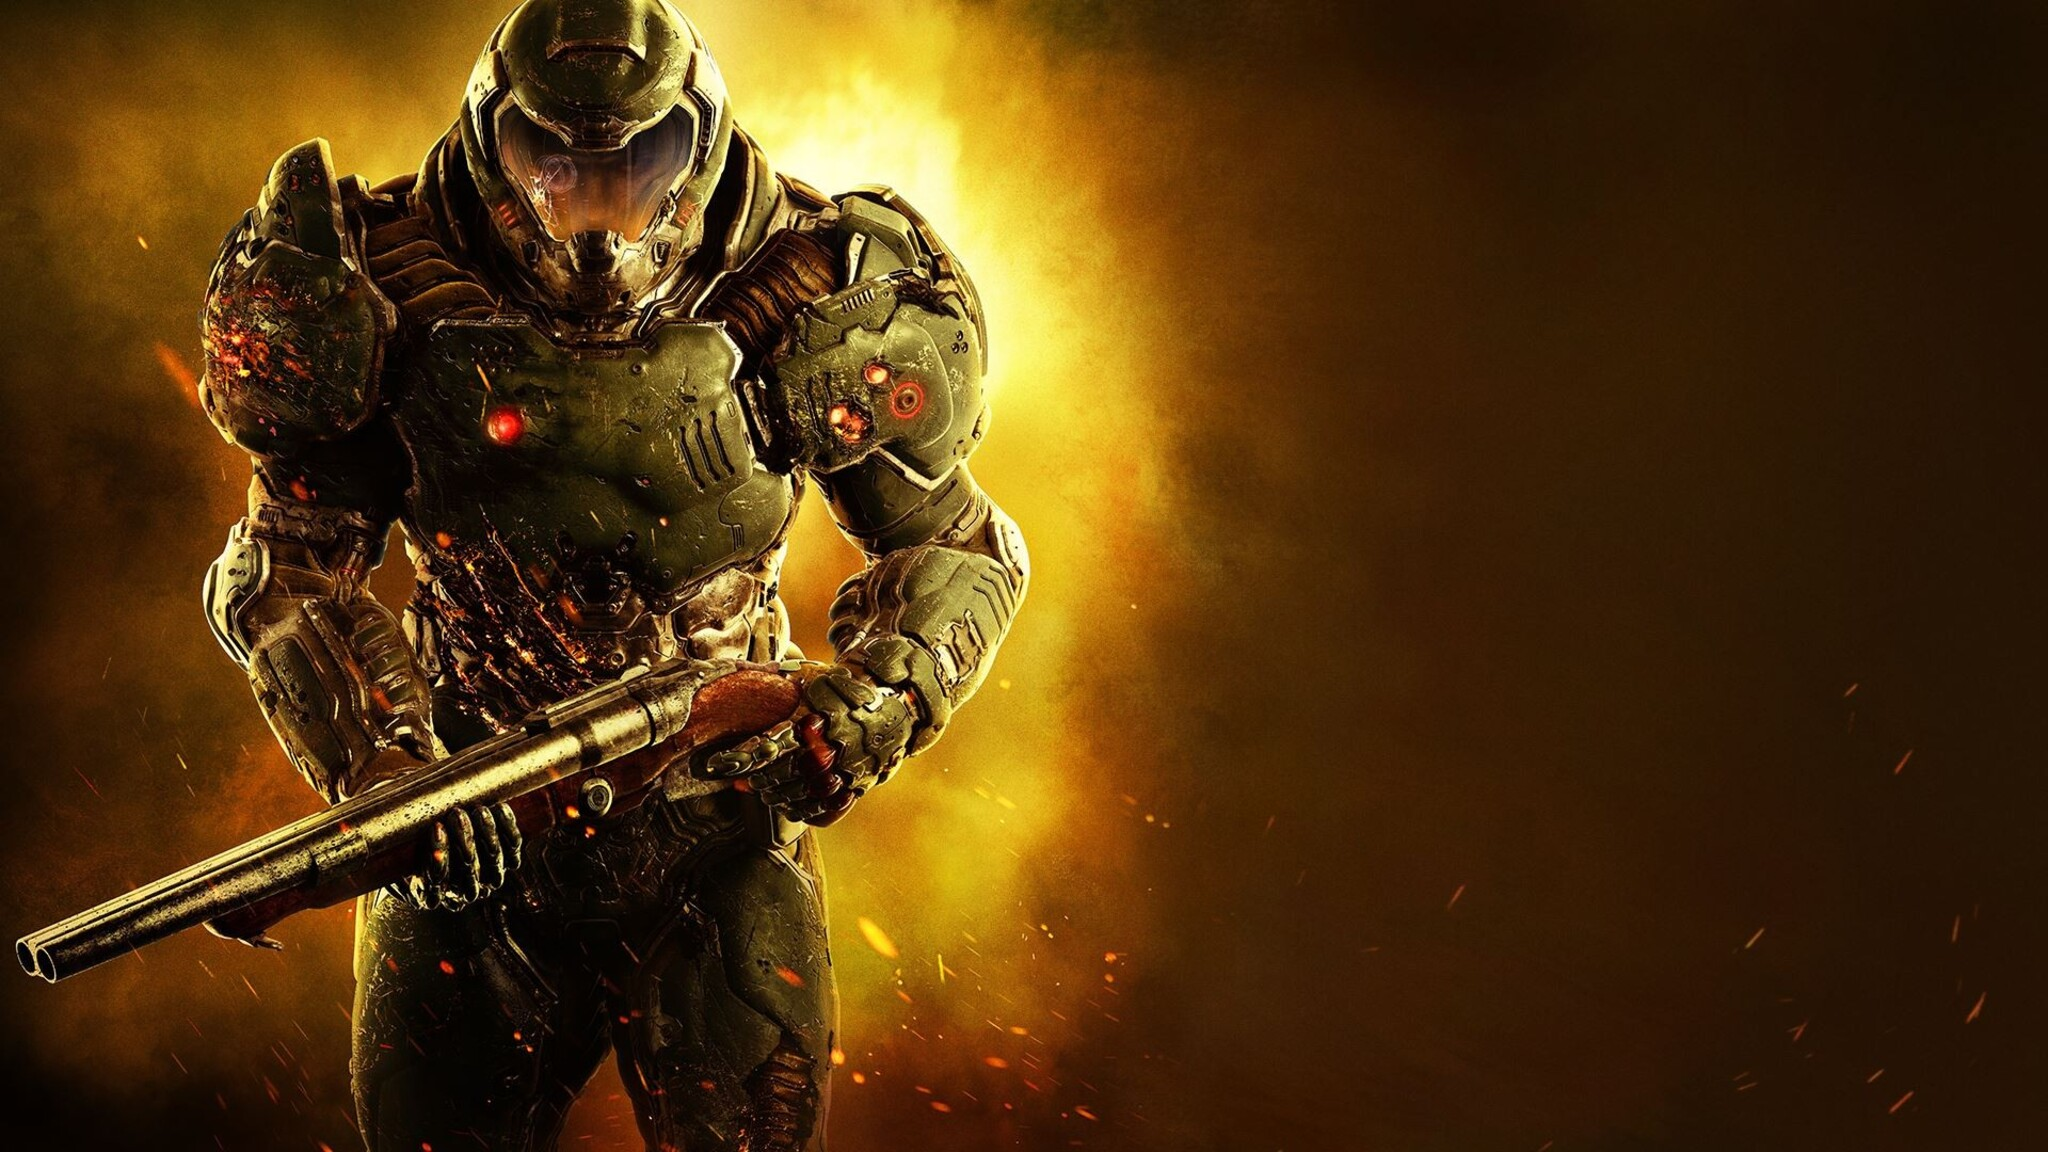 doom wallpaper 1366x768 - photo #23